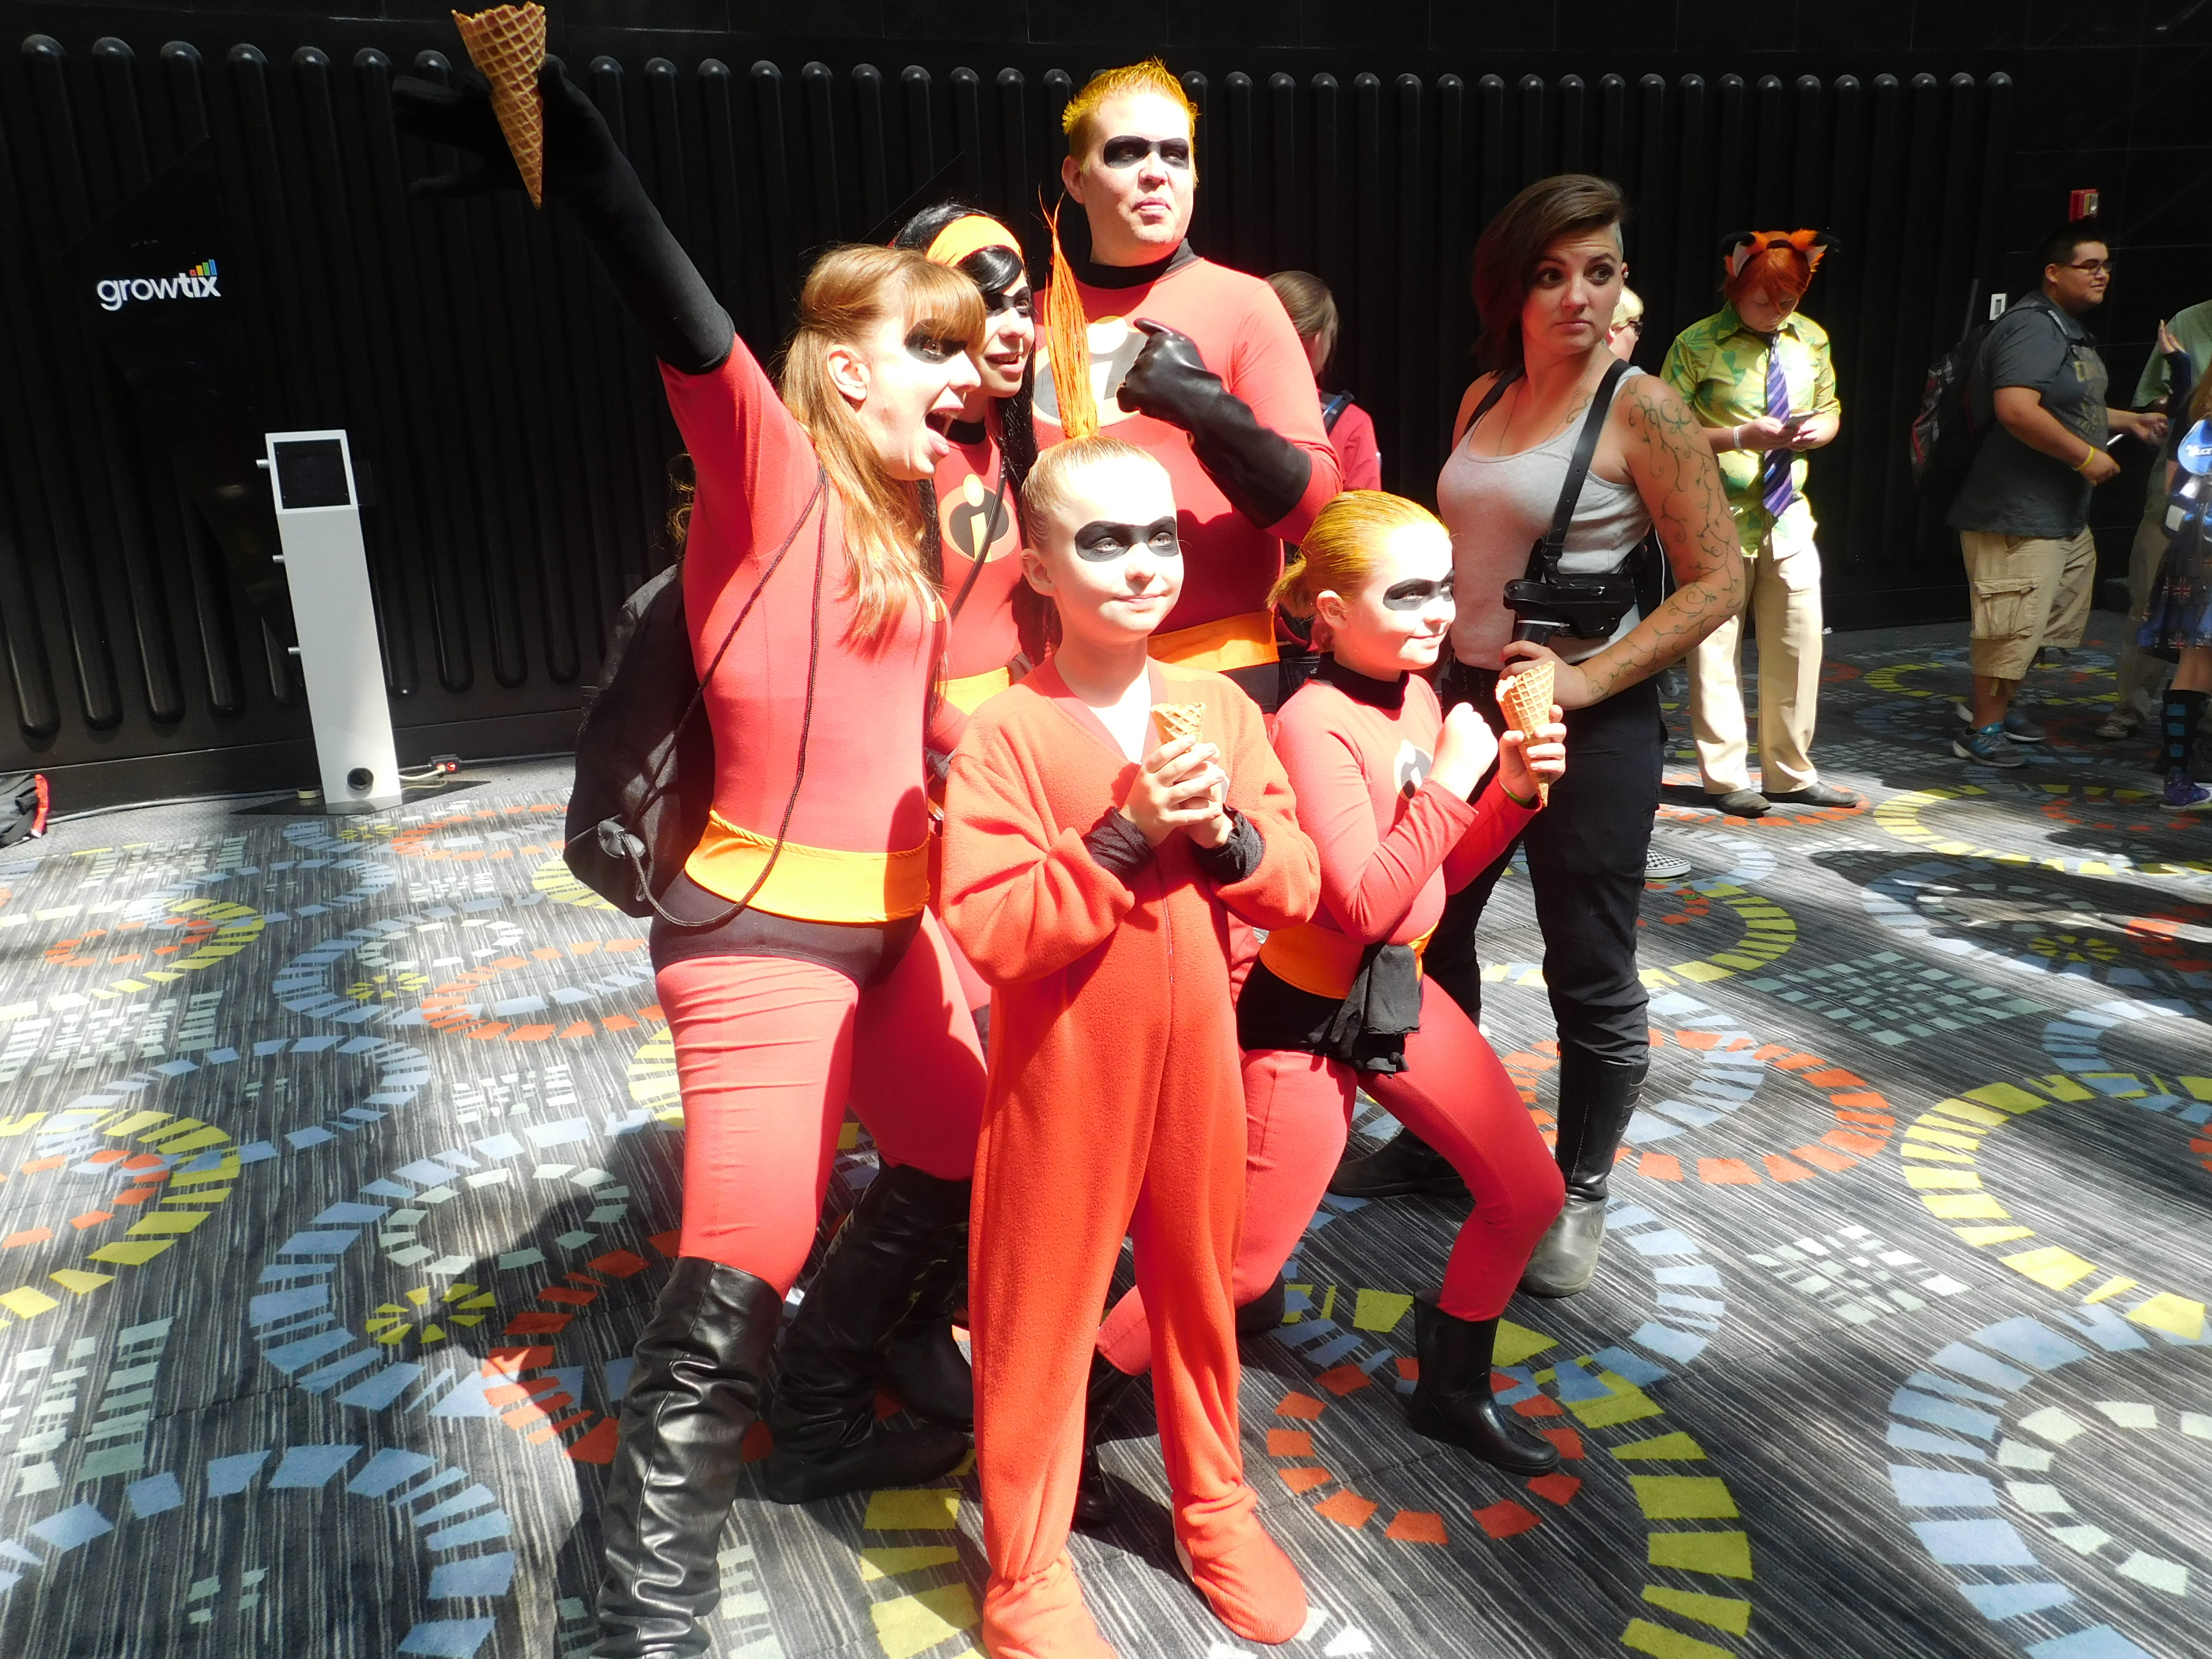 SLCCd3.027 - Looks like the Incredibles have a new member of the team.